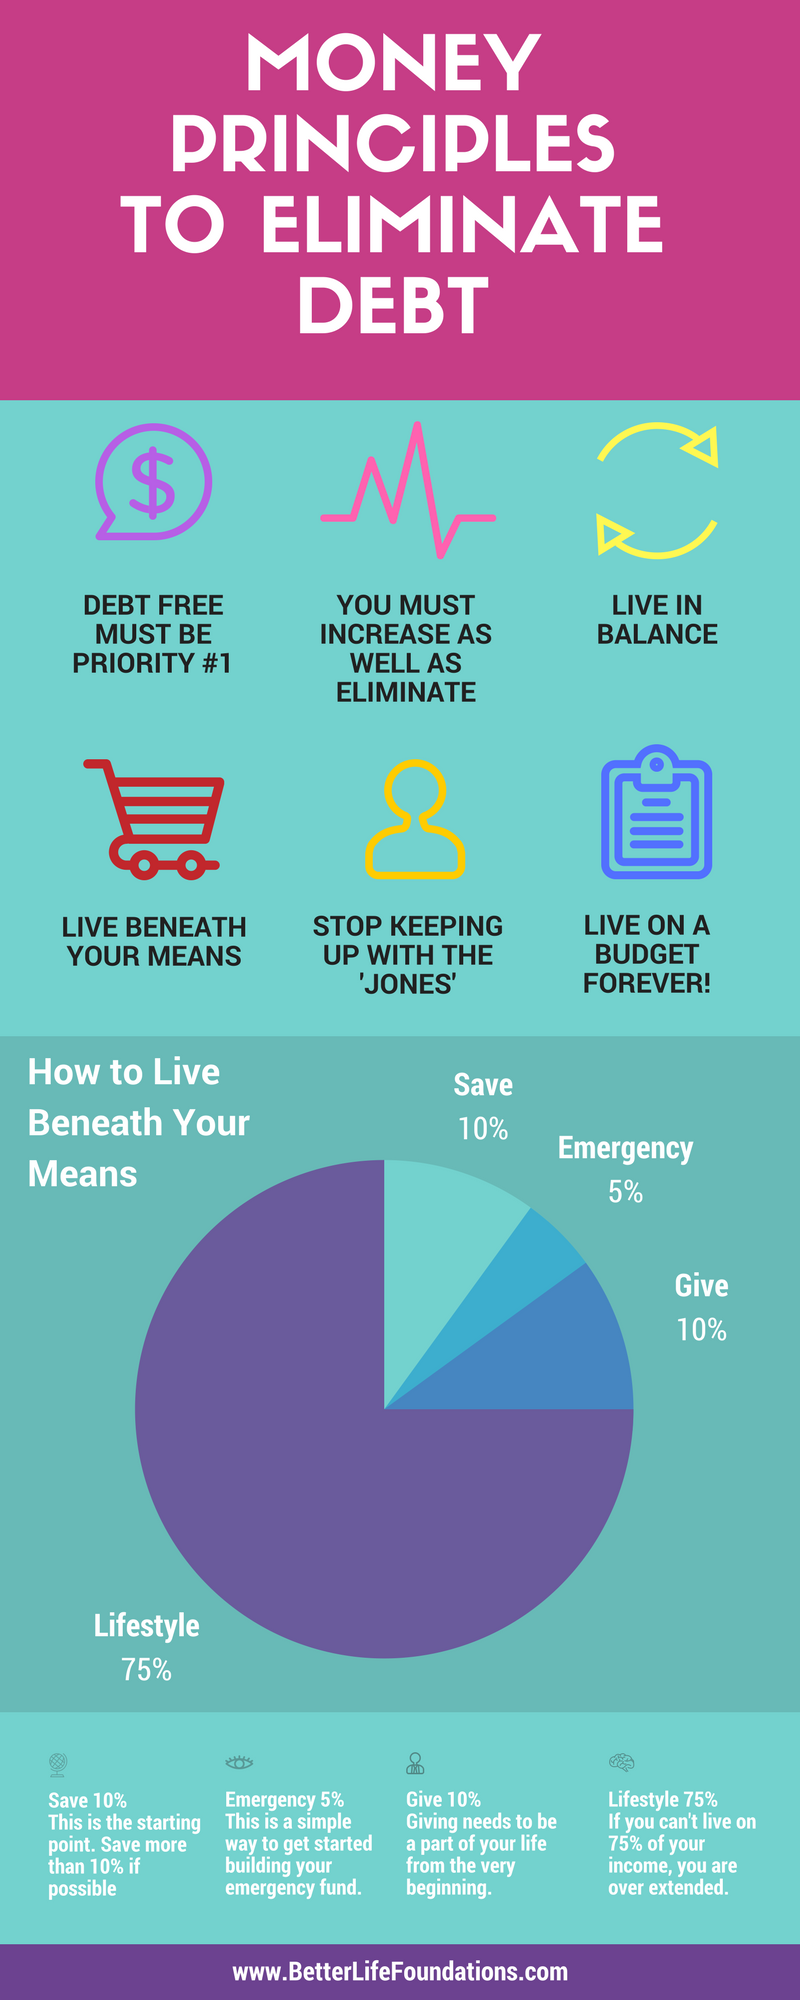 Money Principles to Eliminate Debt Infographic